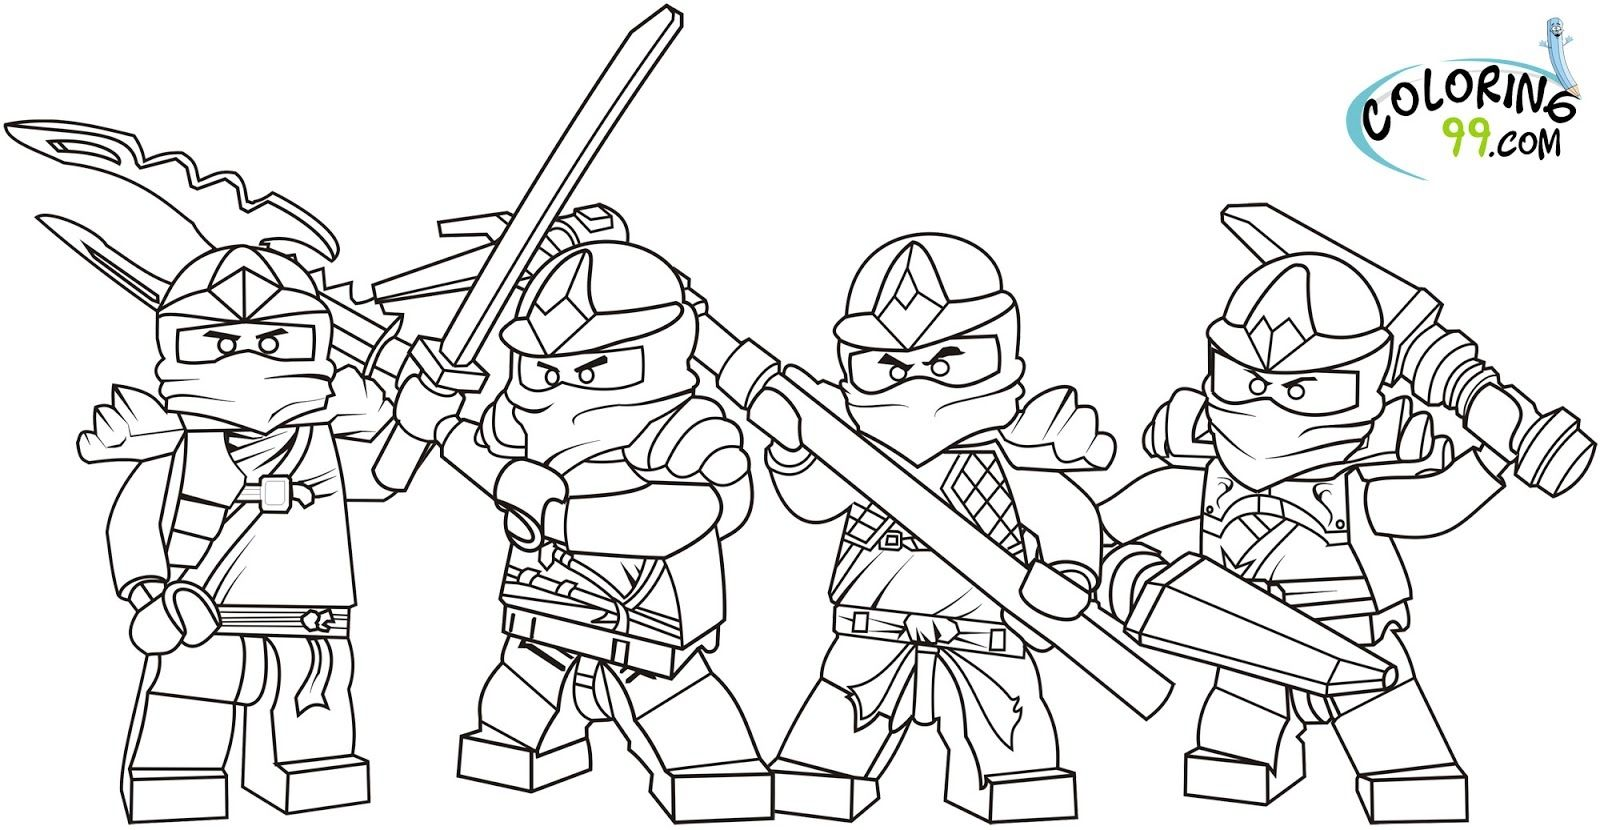 download incredible ninja coloring pages printable for free httpdesignkidsinfo - Ninja Coloring Page